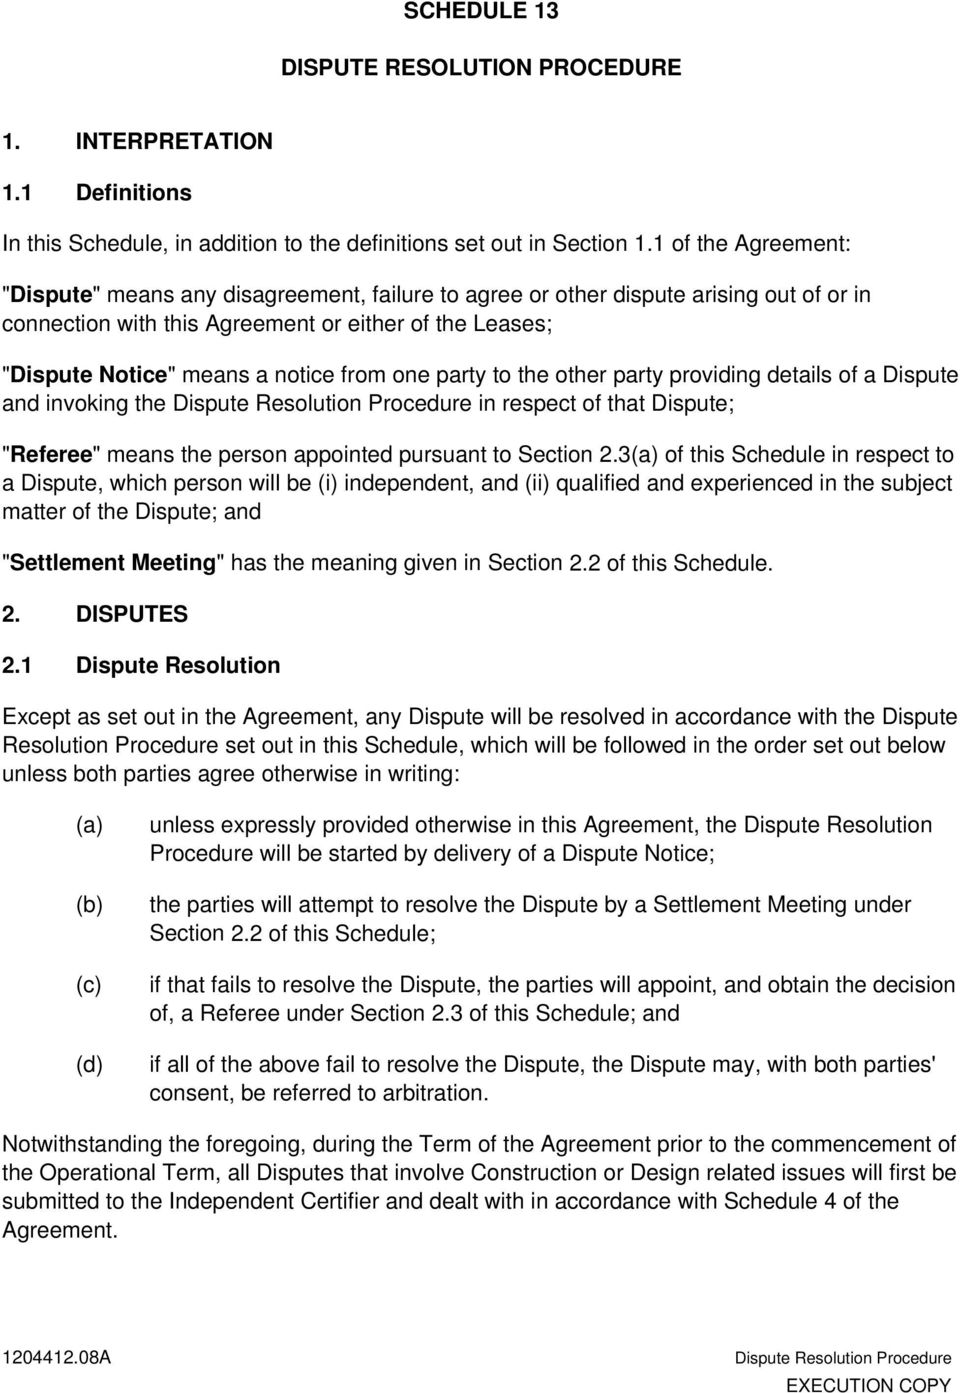 "from one party to the other party providing details of a Dispute and invoking the Dispute Resolution Procedure in respect of that Dispute; ""Referee"" means the person appointed pursuant to Section 2."